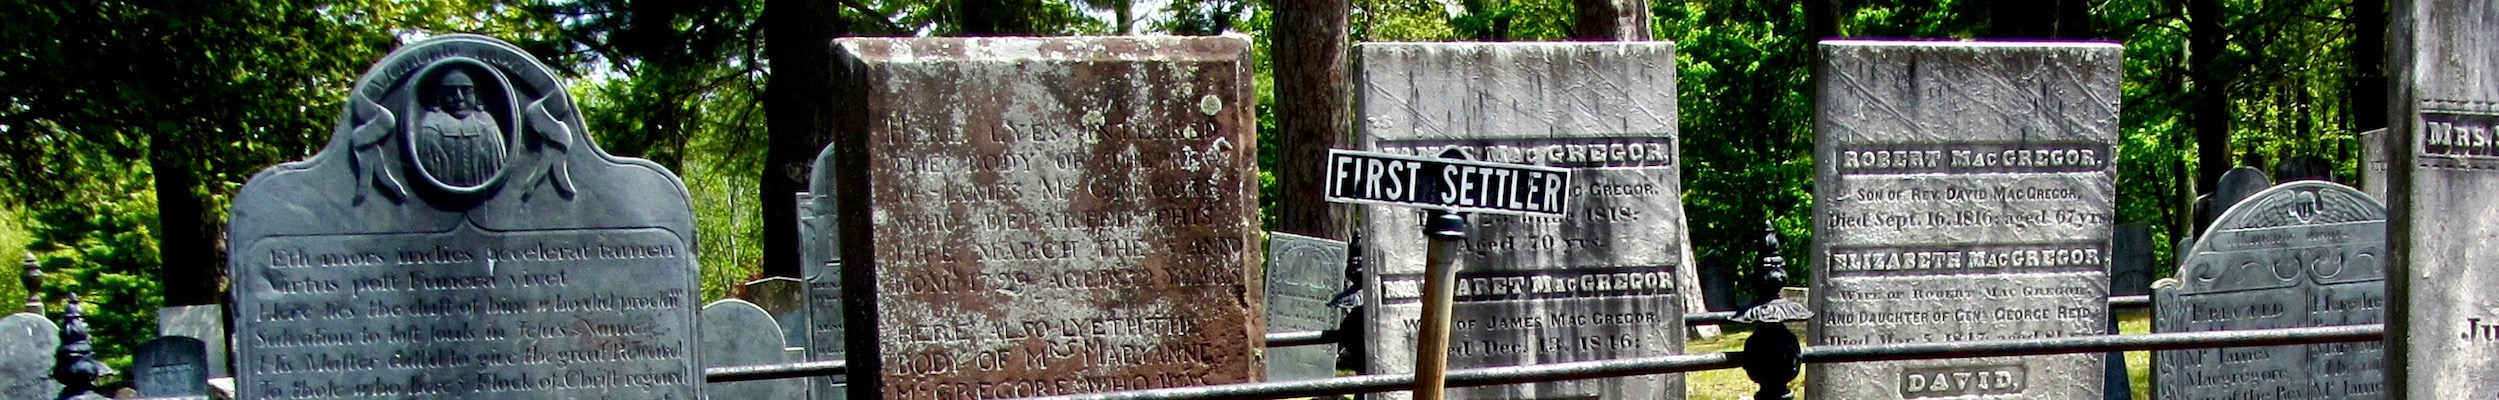 The First Settlers plot in Forest Hill Cemetery.